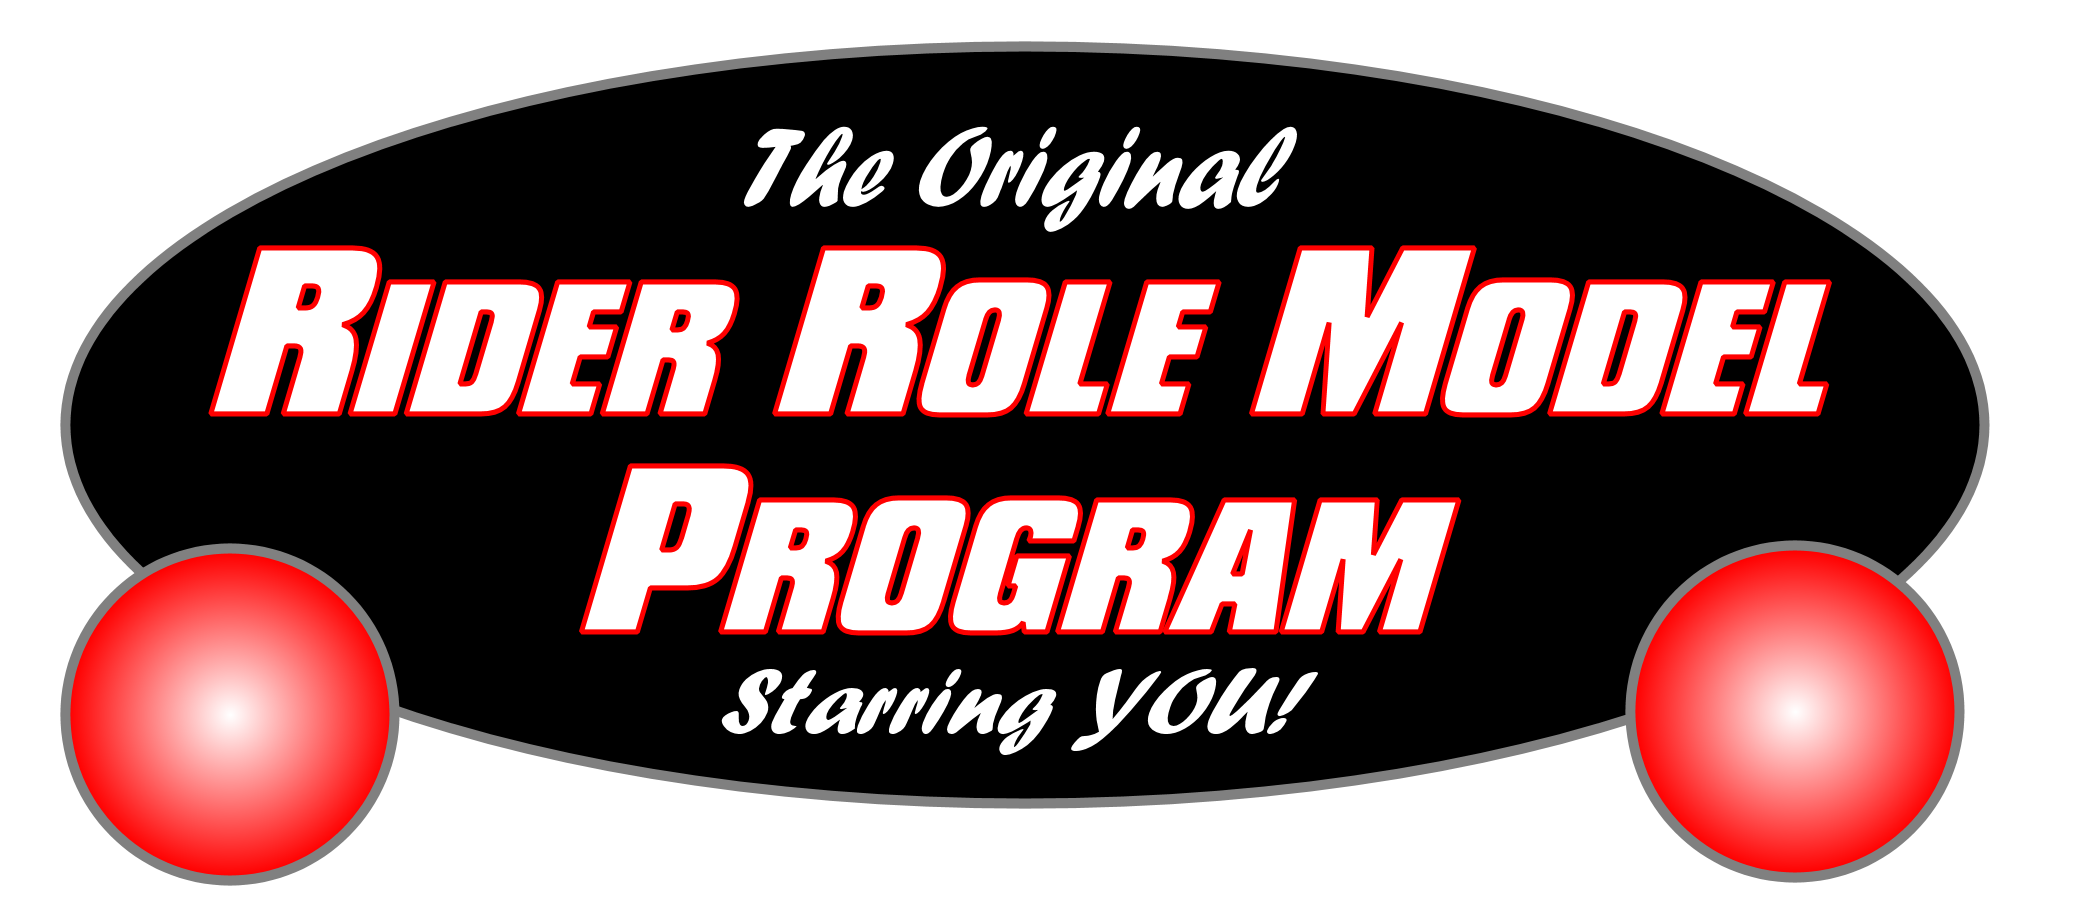 The Rider Role Model Program Starring YOU!